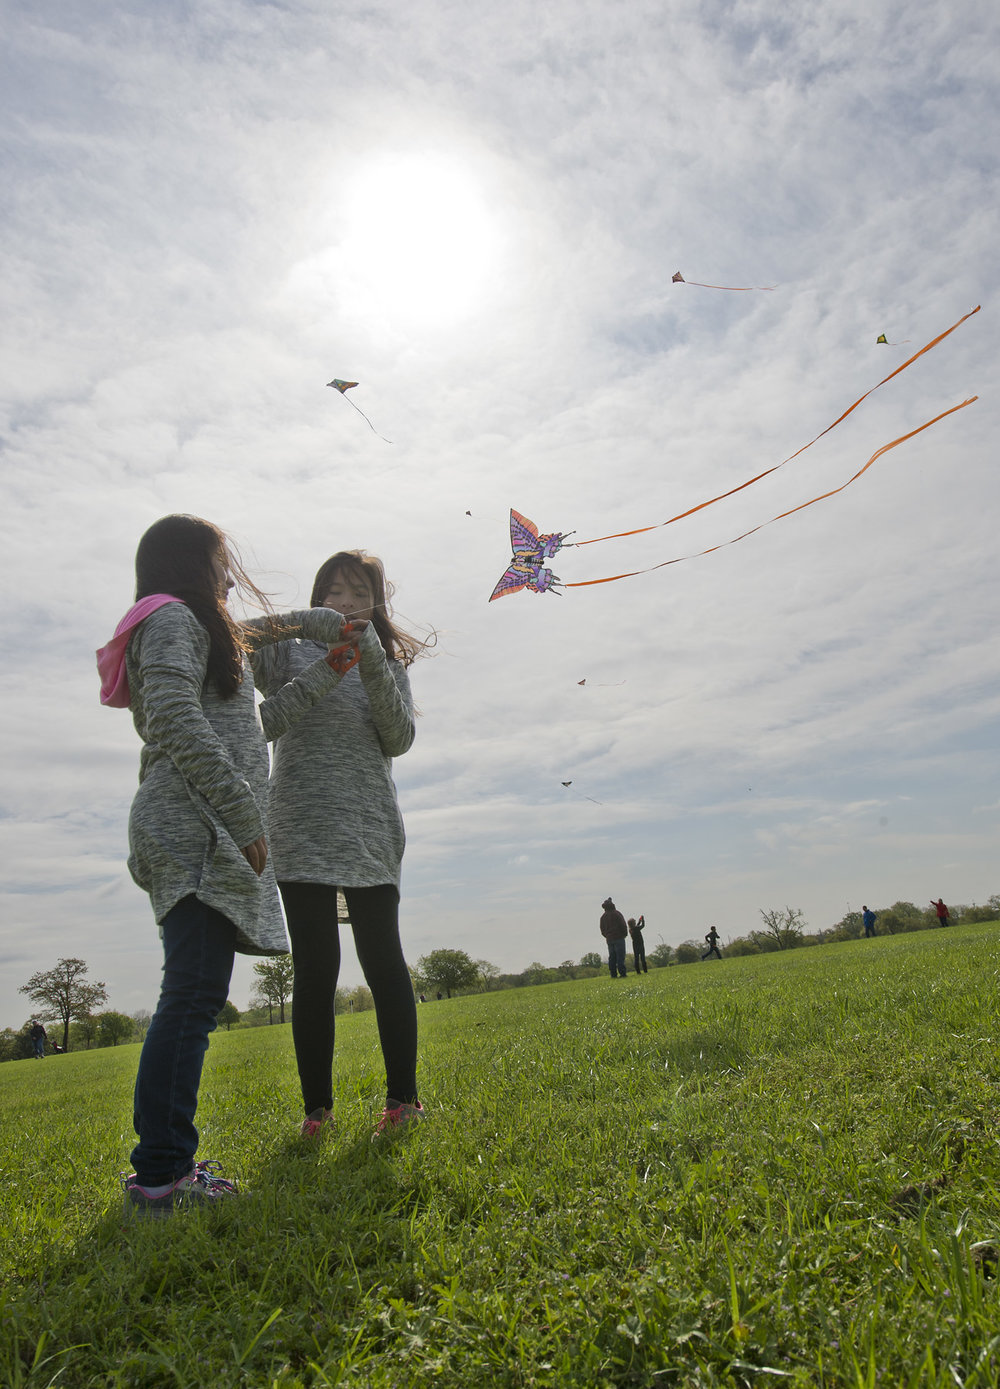 Sisters, from left, Aiyana and Riena Mishima work together to let a little slack out for their kite during a kite flying contest put on by local radio station PEACE 107.7, Saturday morning, March 19, 2016, at the George Bush Presidential Library and Museum in College Station, Texas.